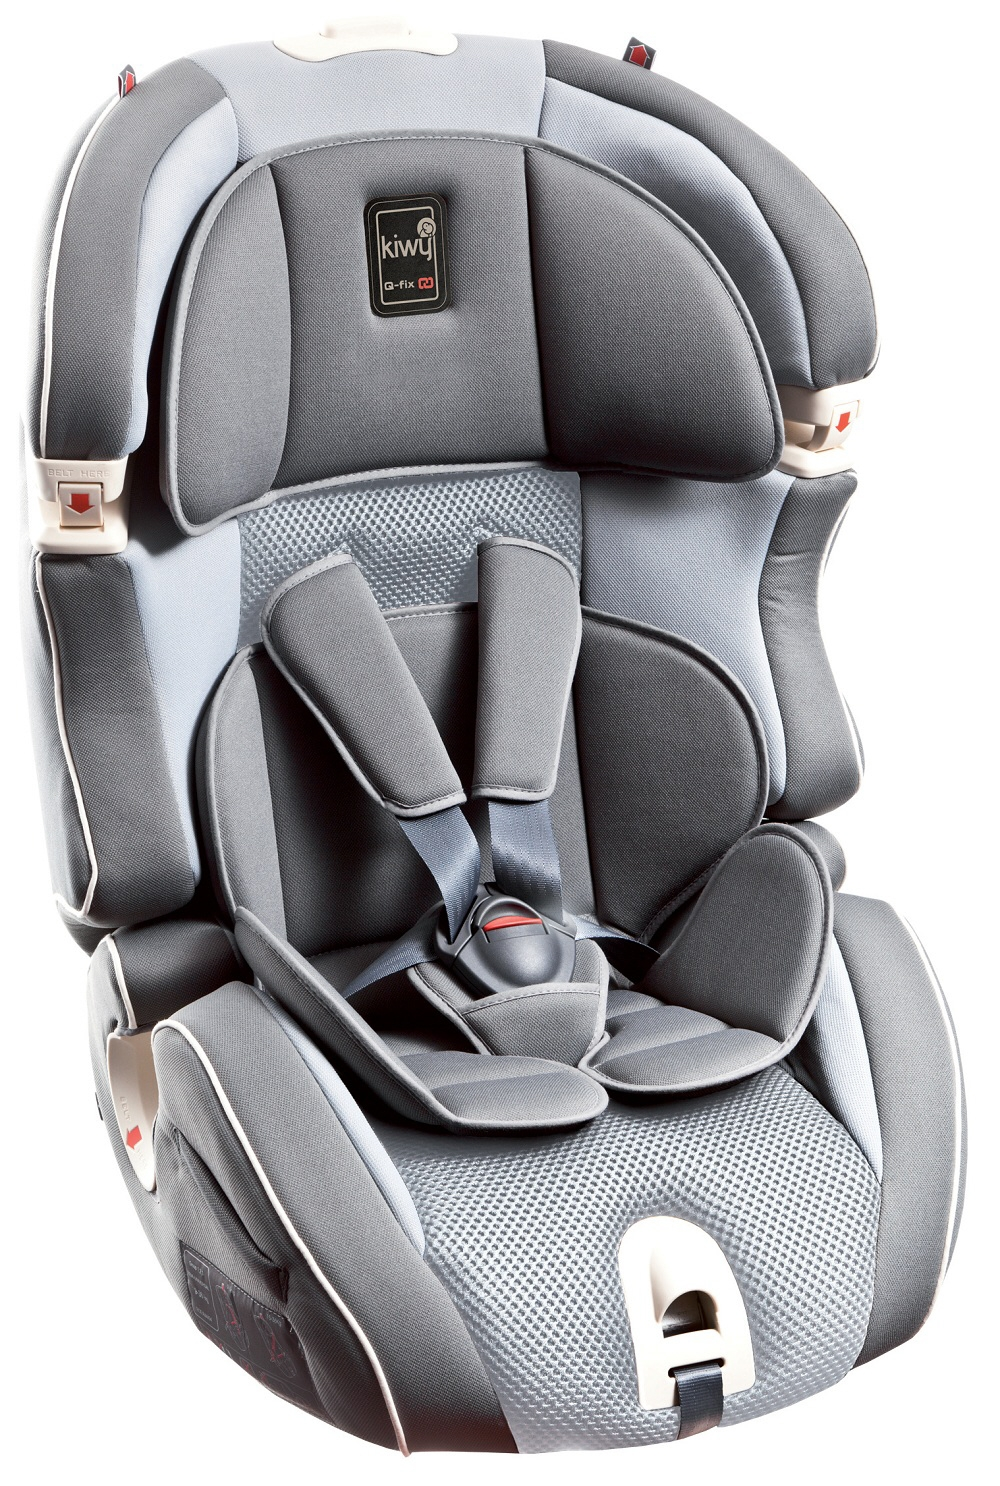 how to fix uncomfortable car seats